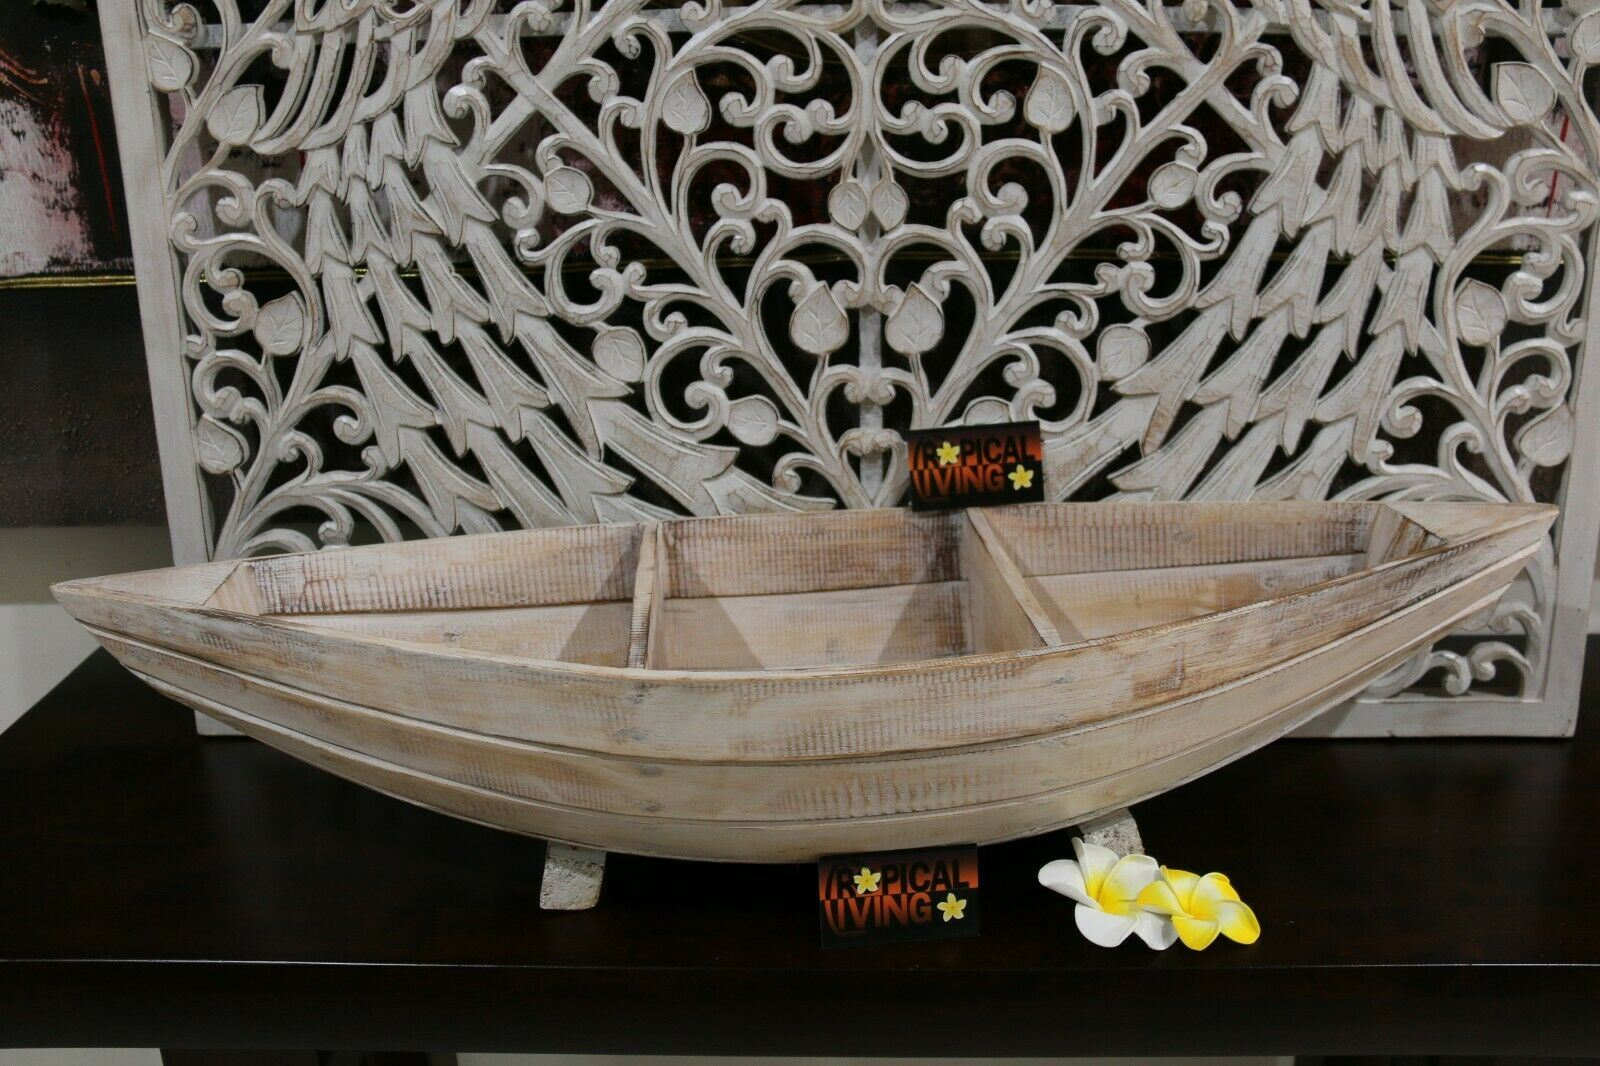 NEW Balinese Hand Crafted Wooden Row Boat Decor - Divided Row Boat Bowl/Pot